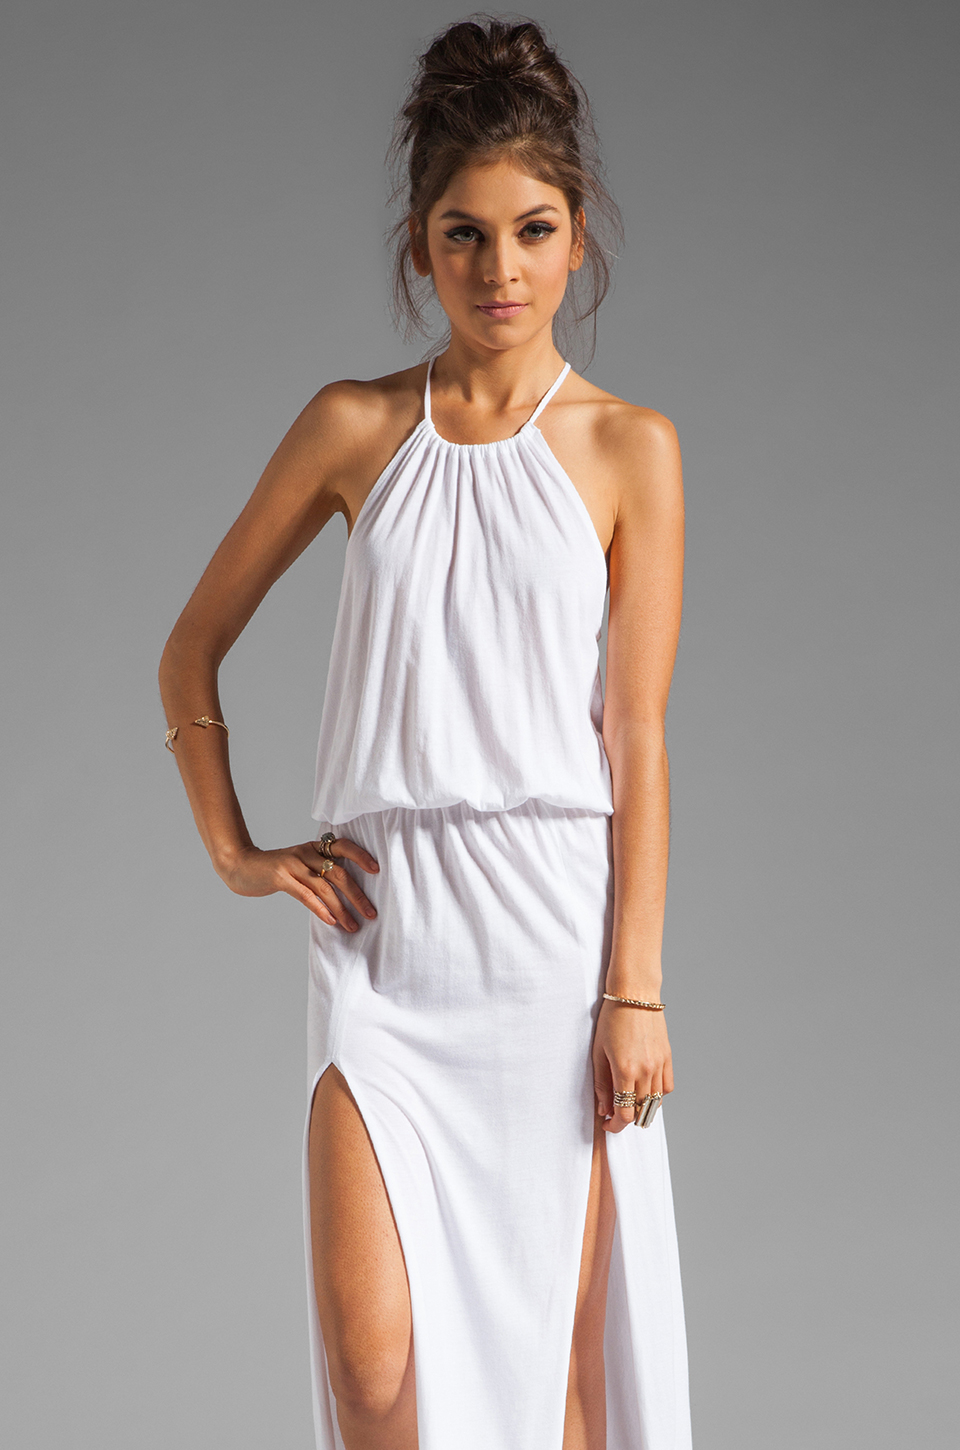 Lyst - Blue Life Two Slit Halter Dress in White 8f2091c4a